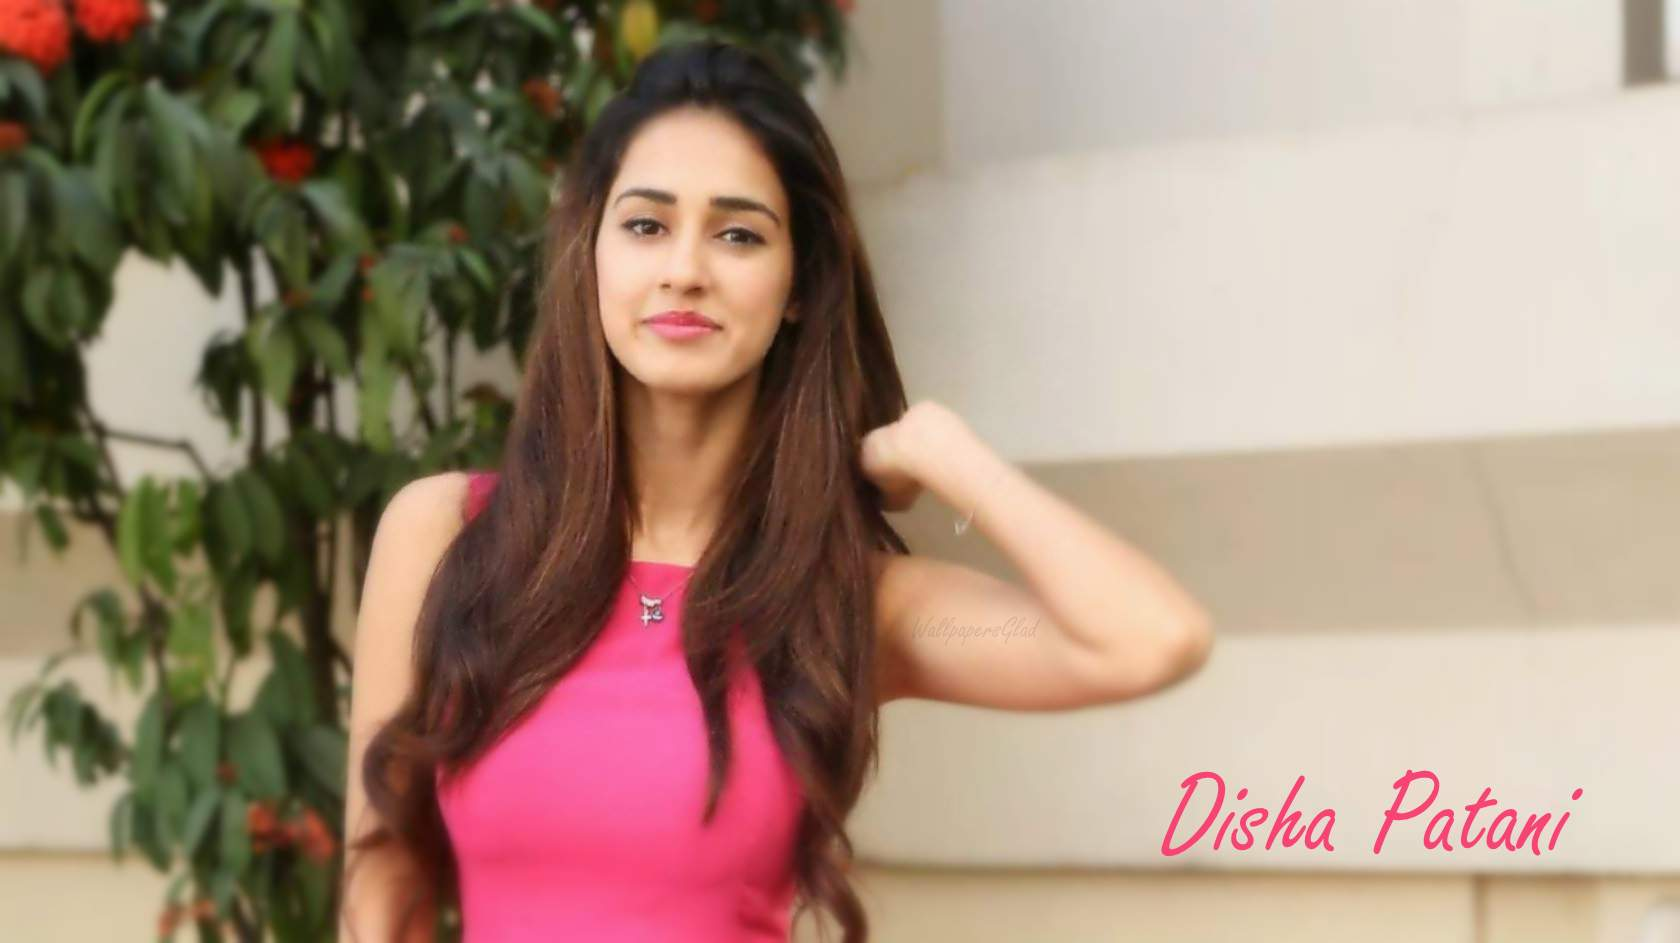 Disha Patani Images HD, Hot Pics Photos